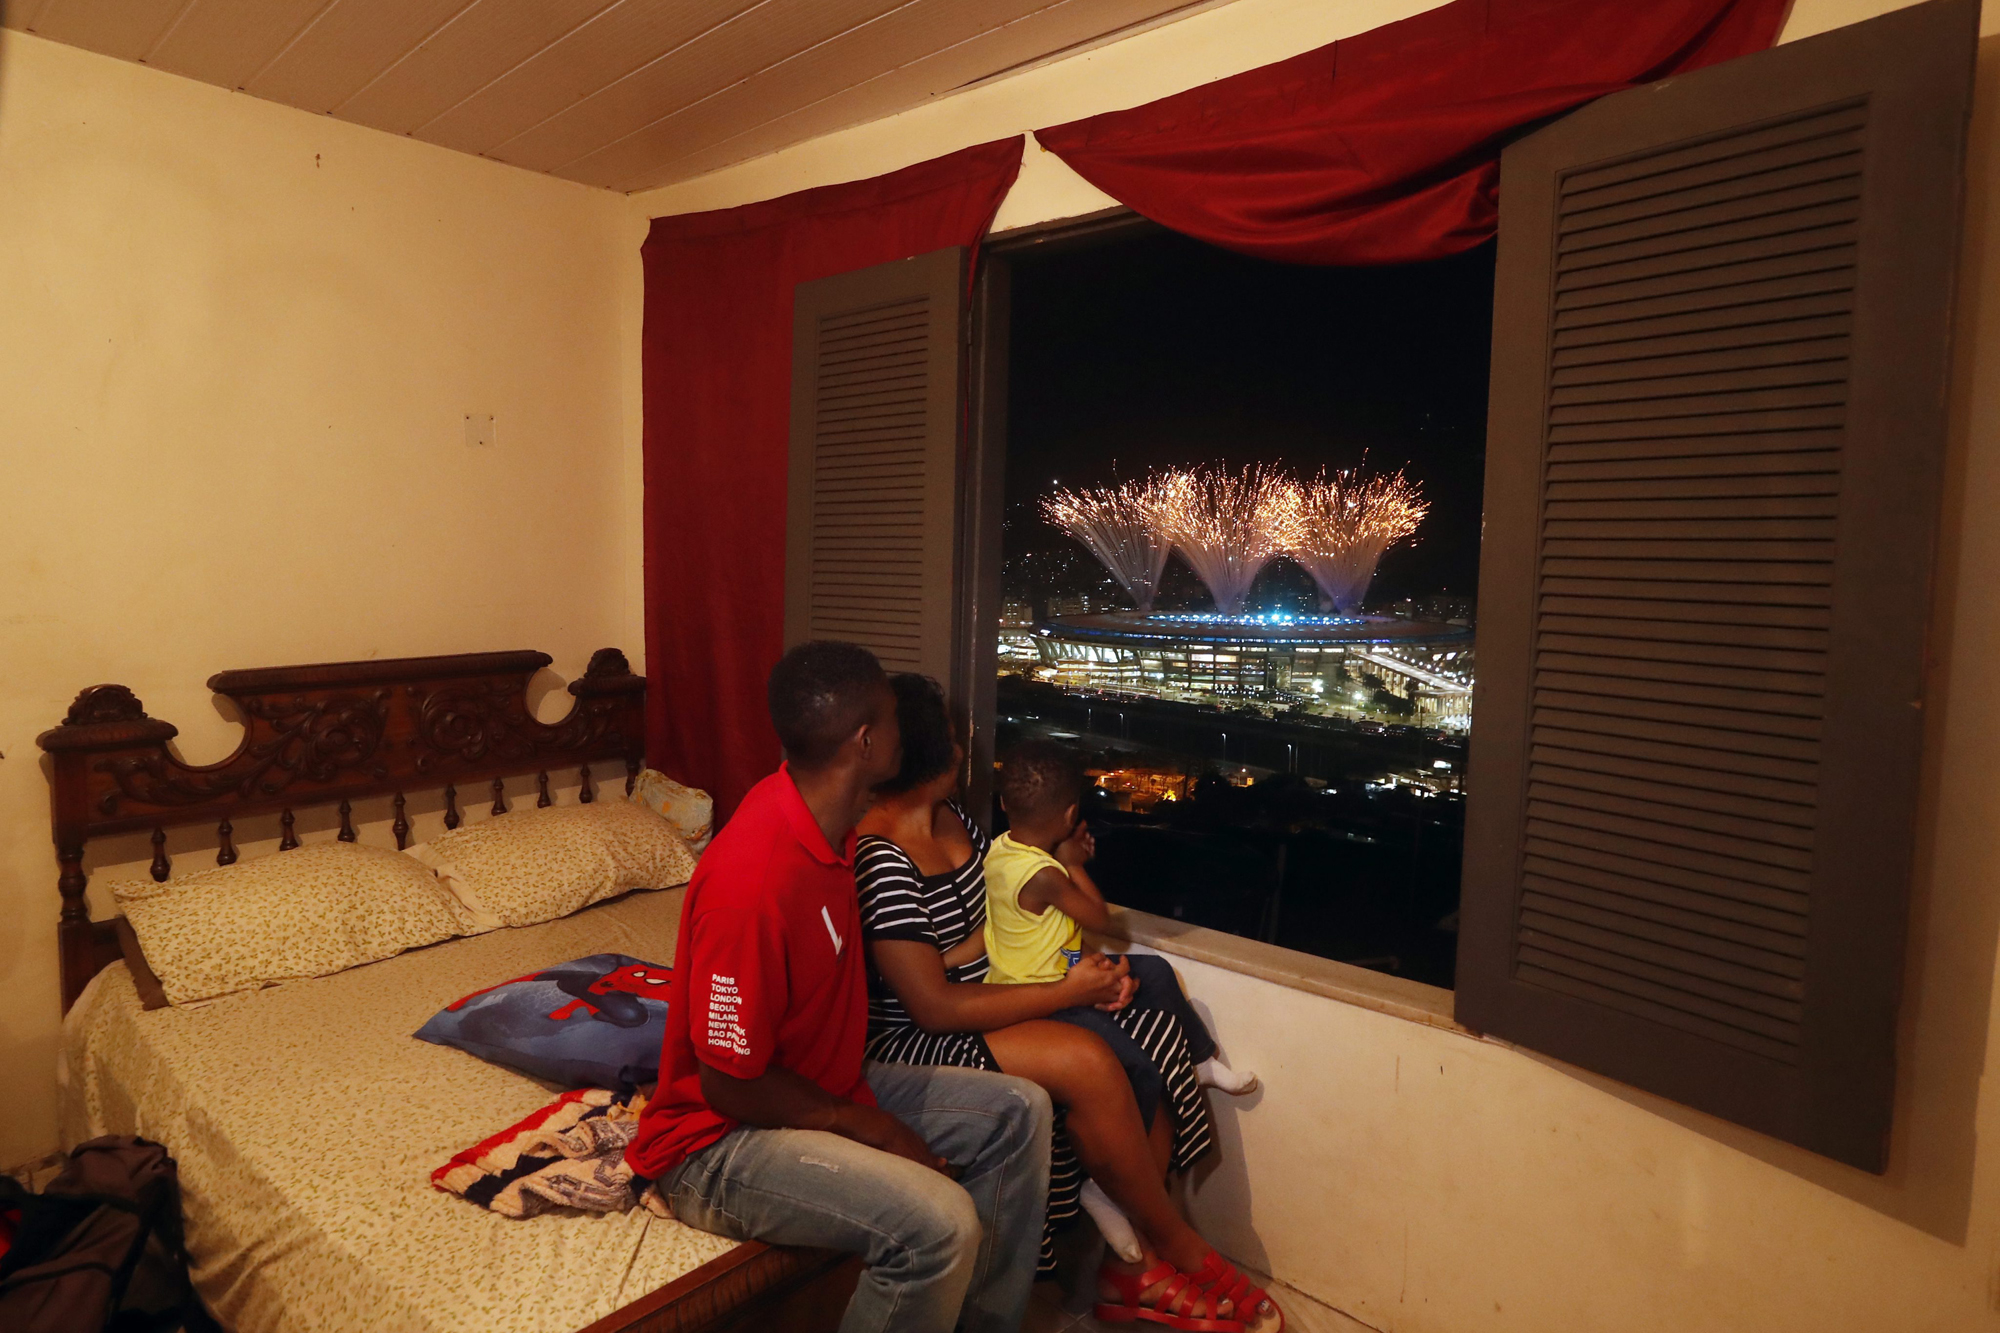 Hermes Felicio, Jaine Espirito Santo and their 3-year old son Hemerson da Costa in the Mangueira favela near the Maracana stadium watch fireworks going off at the start of the opening ceremony of the Rio 2016 Olympic Games at the famous stadium in Rio de Janeiro, Brazil, 05 August 2016.